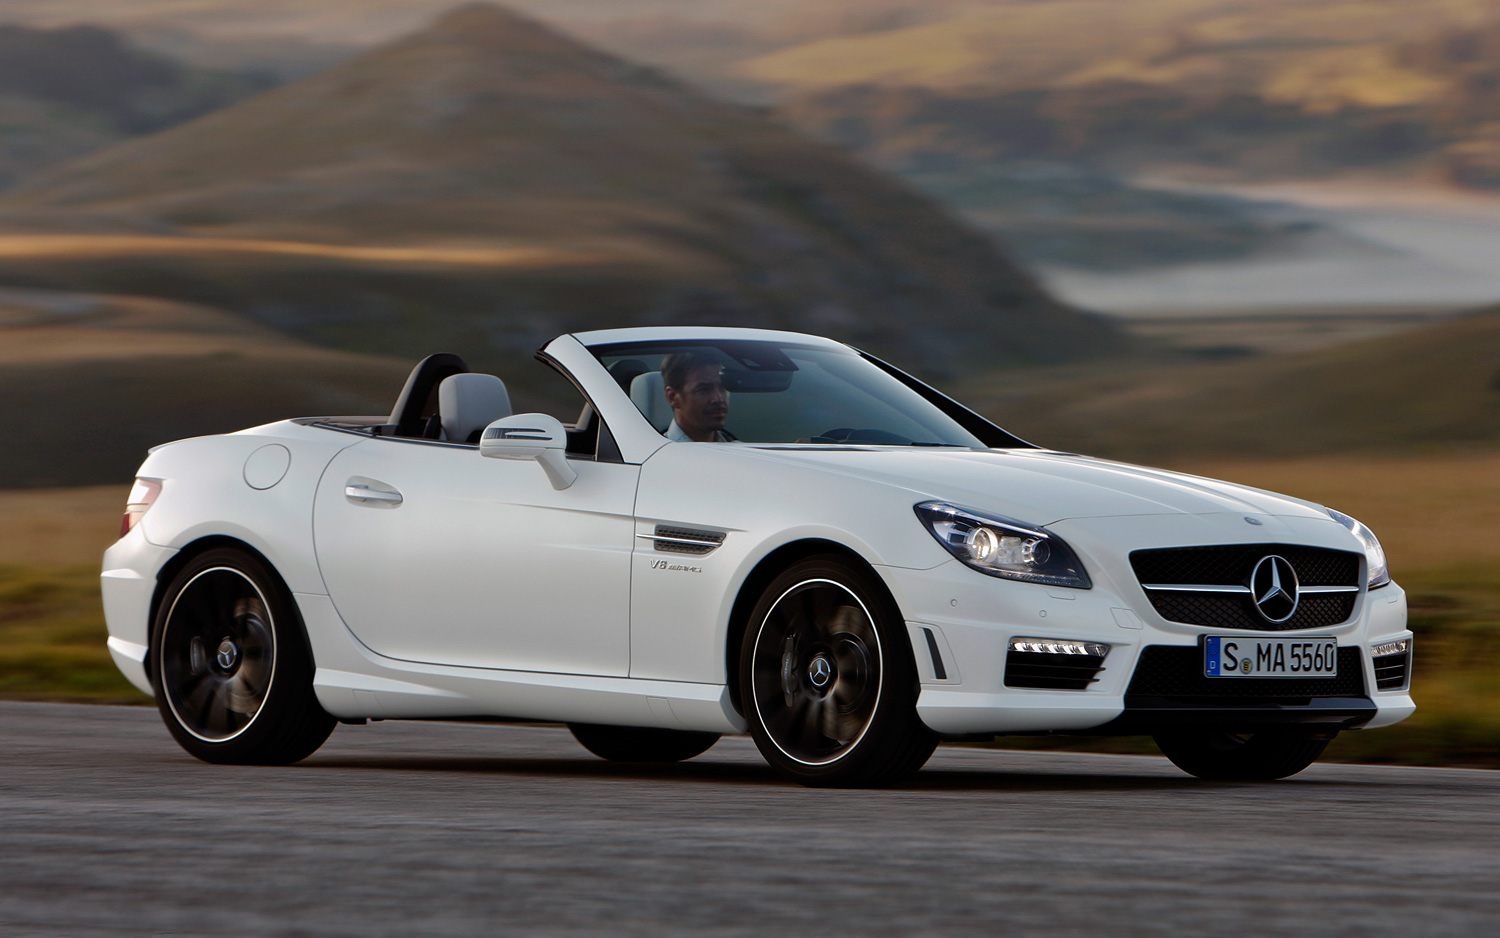 Mercedes-Benz SLK 55 AMG photo 10